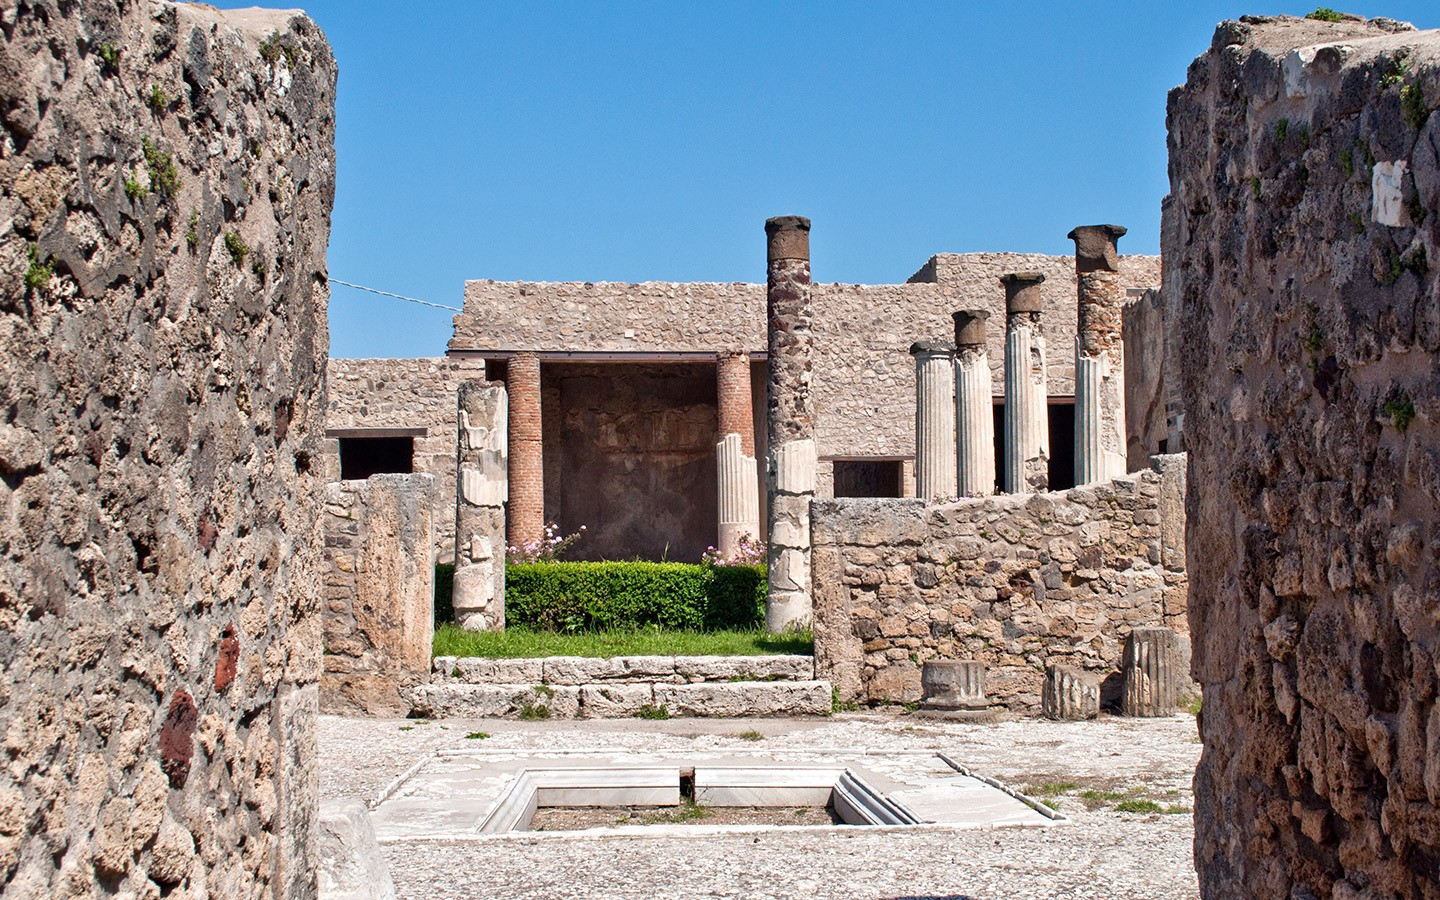 Villa at Pompeii archaeological site